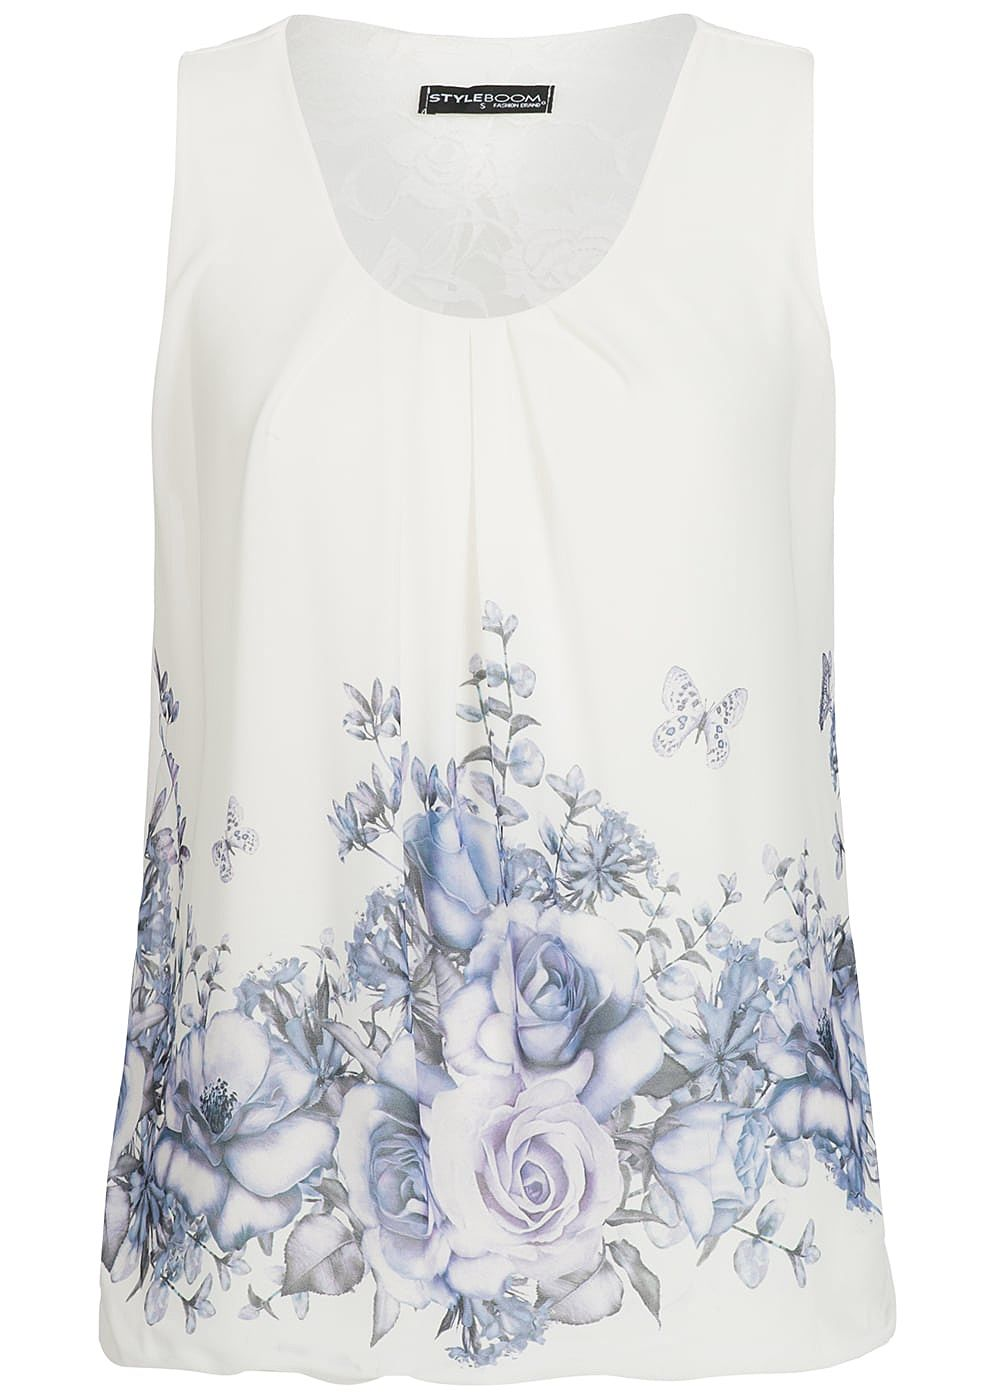 Styleboom Fashion Damen Chiffon Top Flower Print weiss lila - Art.-Nr.: 19056345-XS-WH